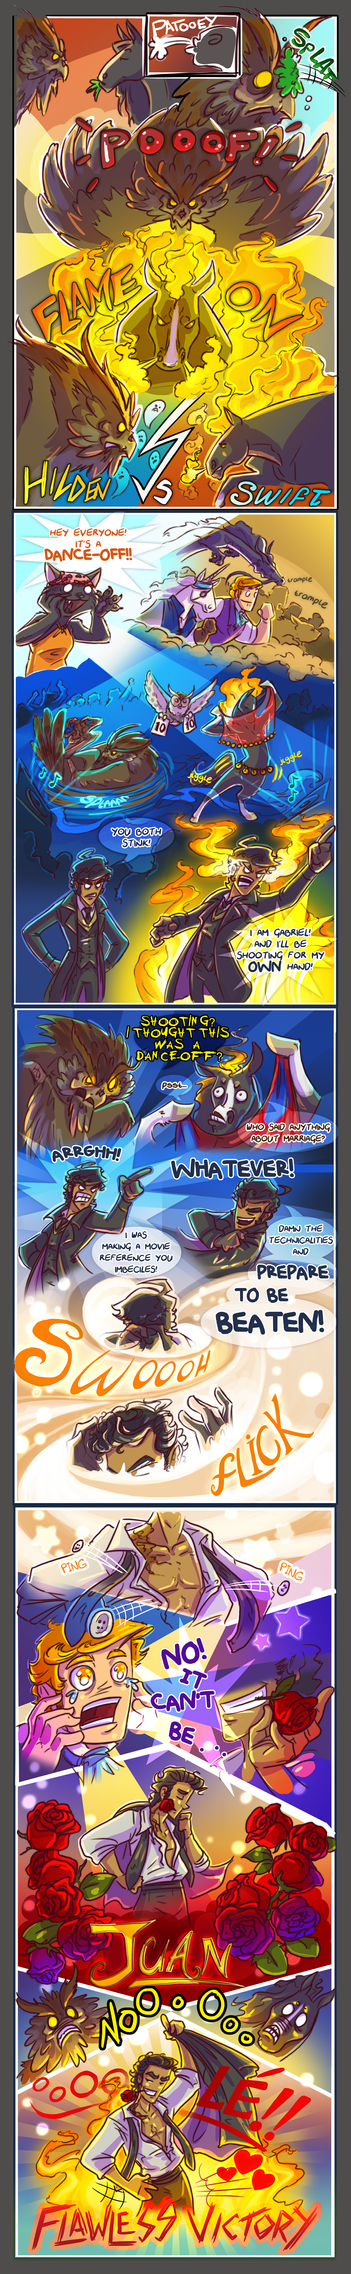 Comic 2016 - Playing with the Big Boys Now by Sleyf